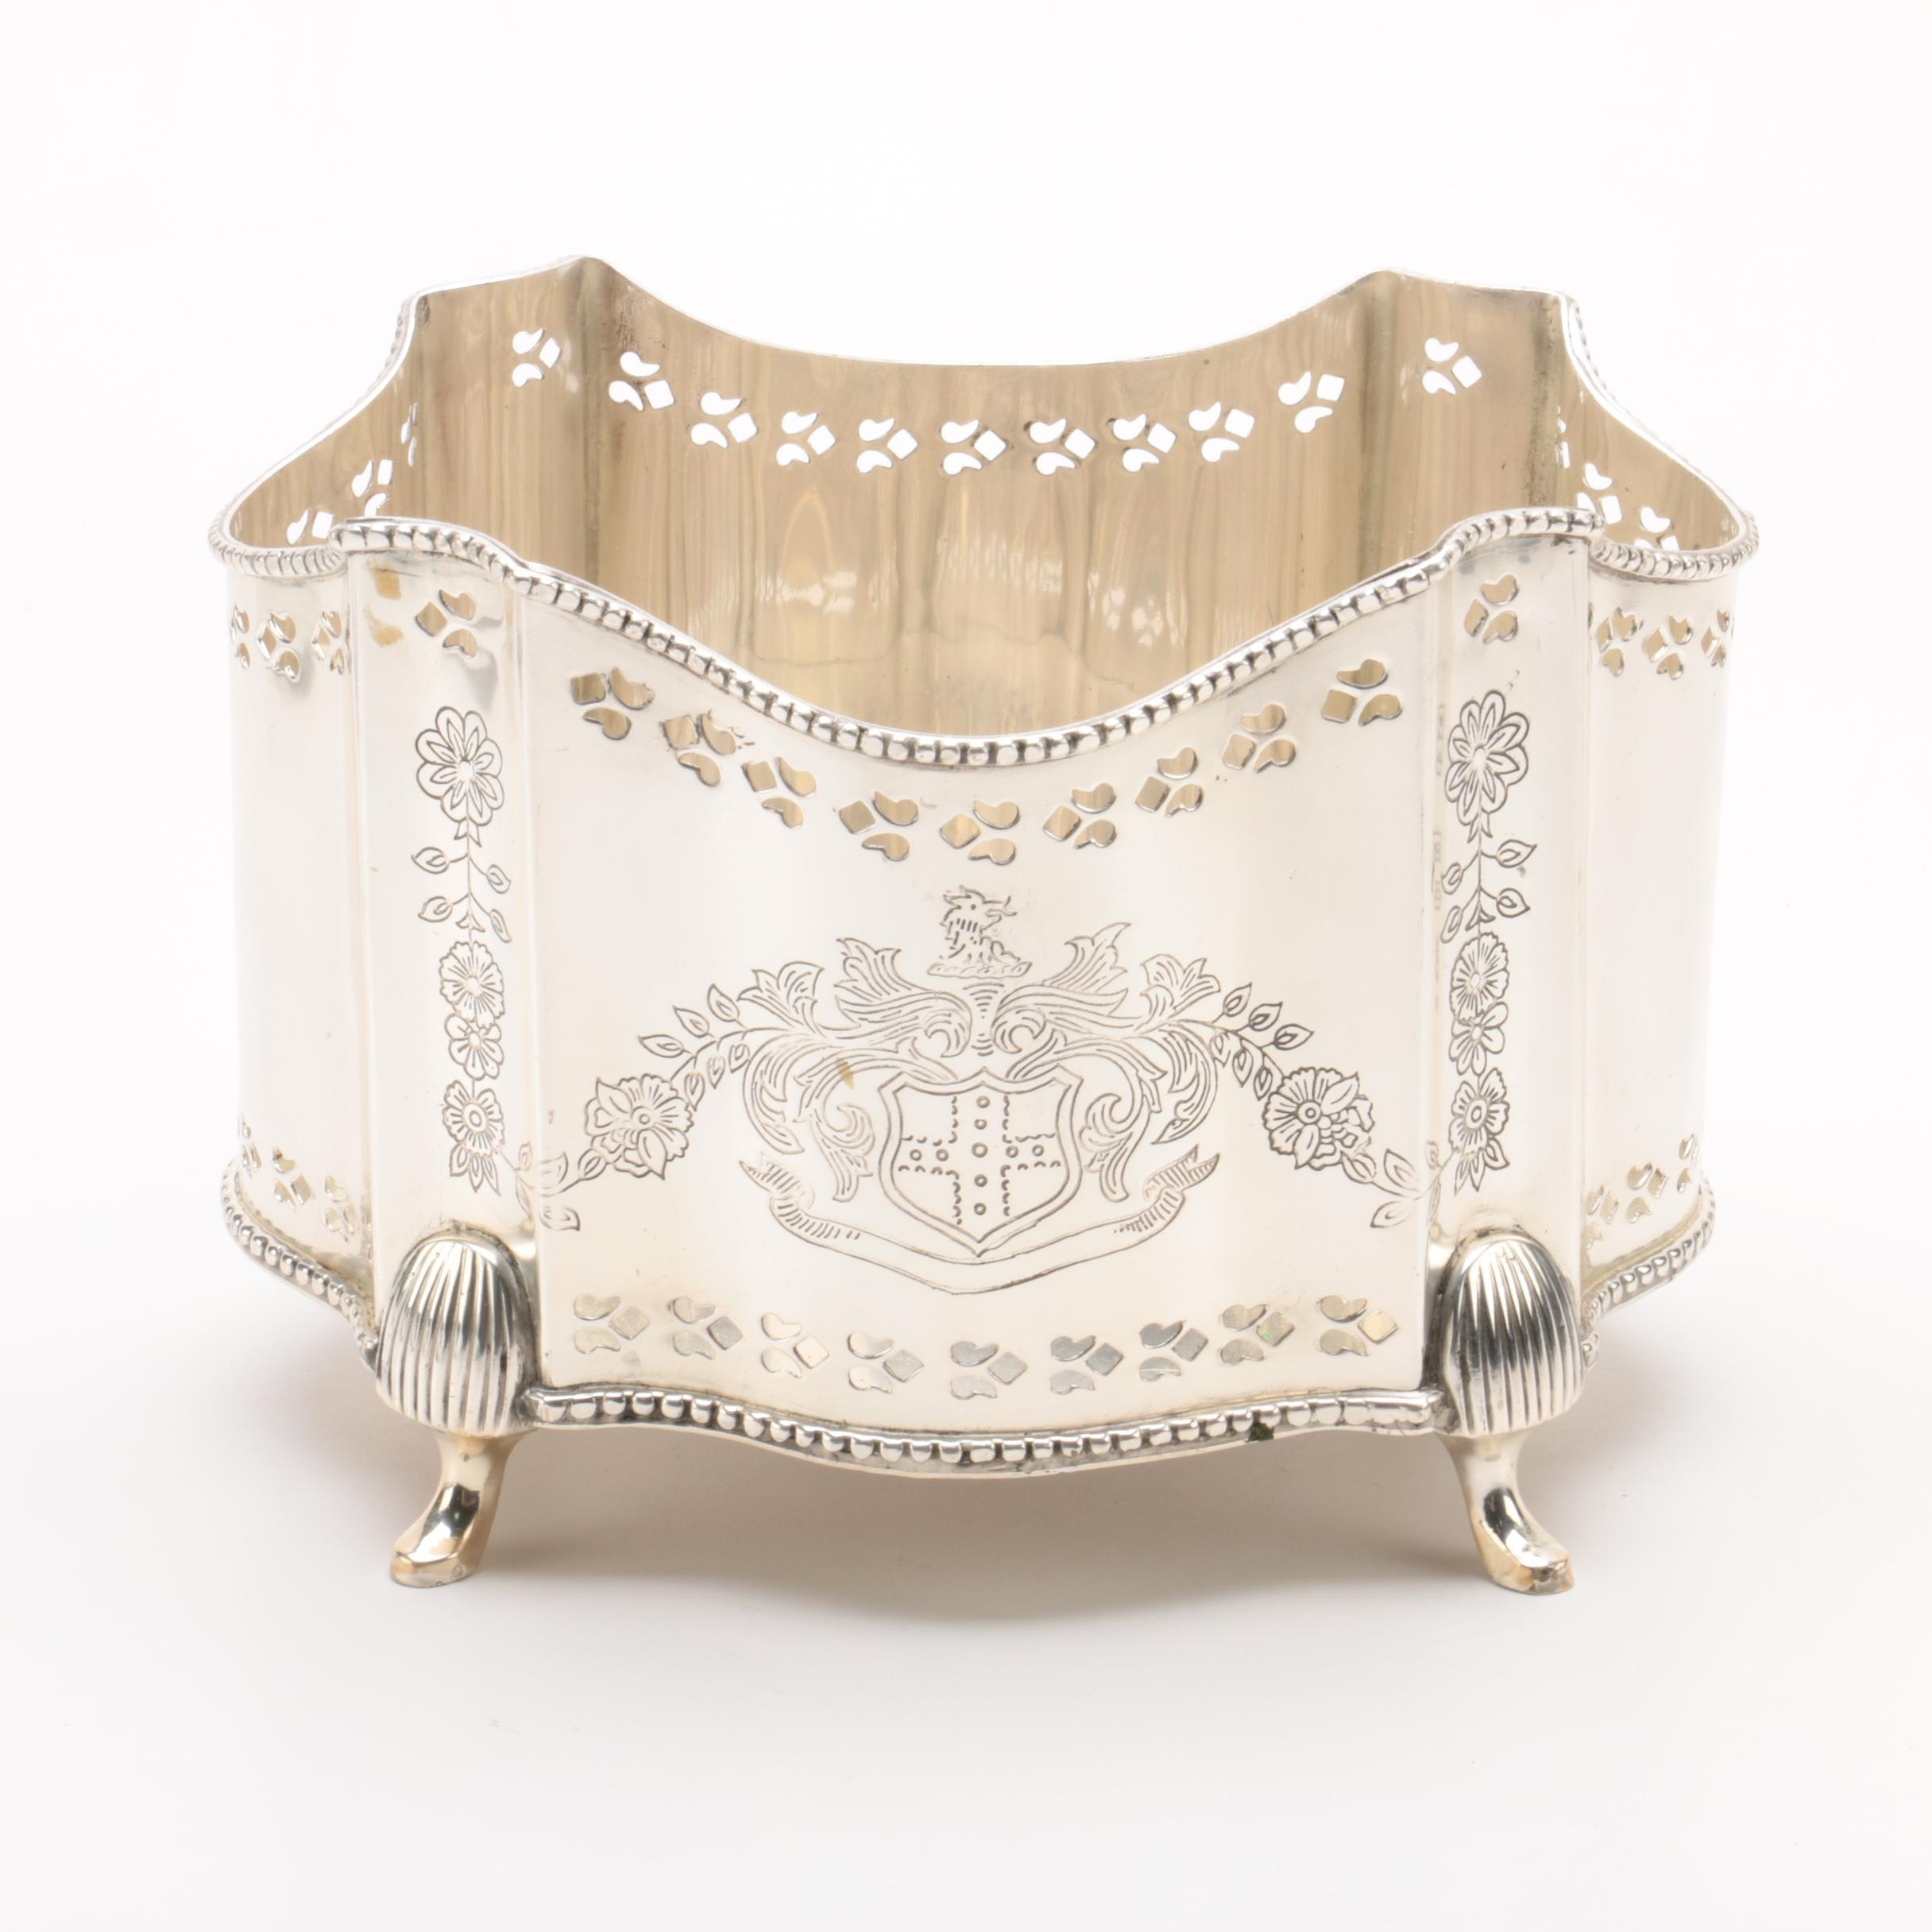 Silver Plate Footed Container with Embossed Floral Detailing